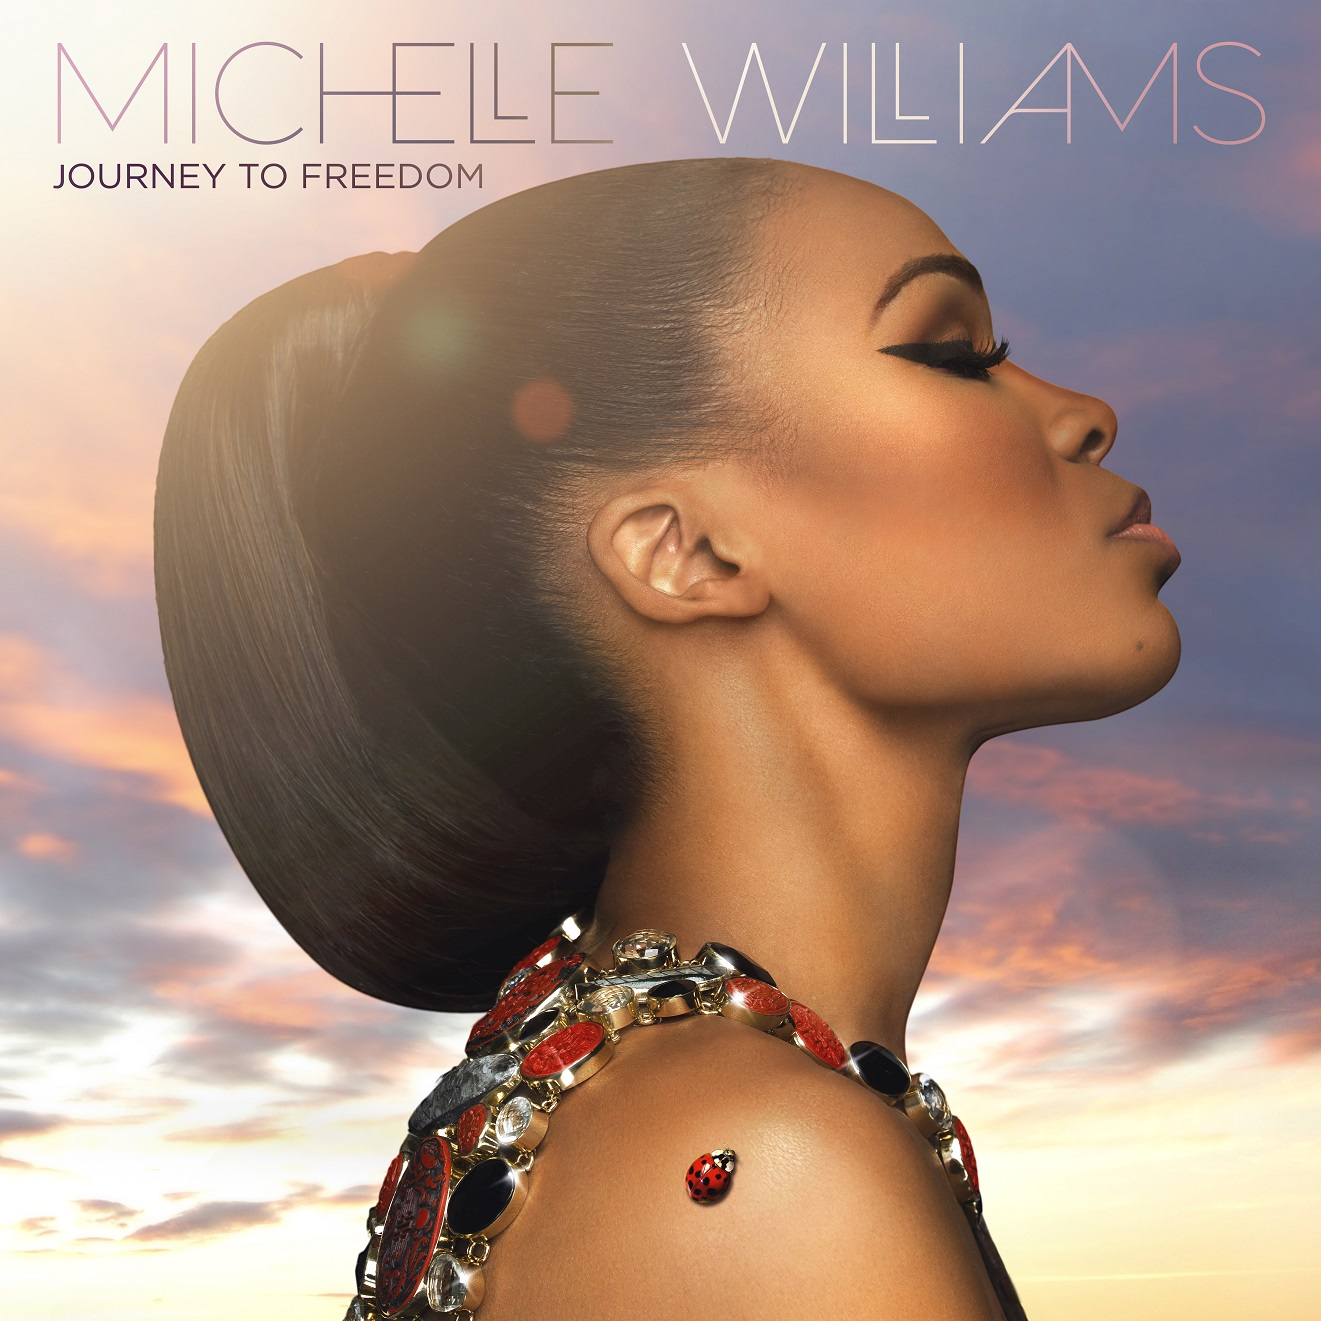 Michelle Williams journey to freedom download